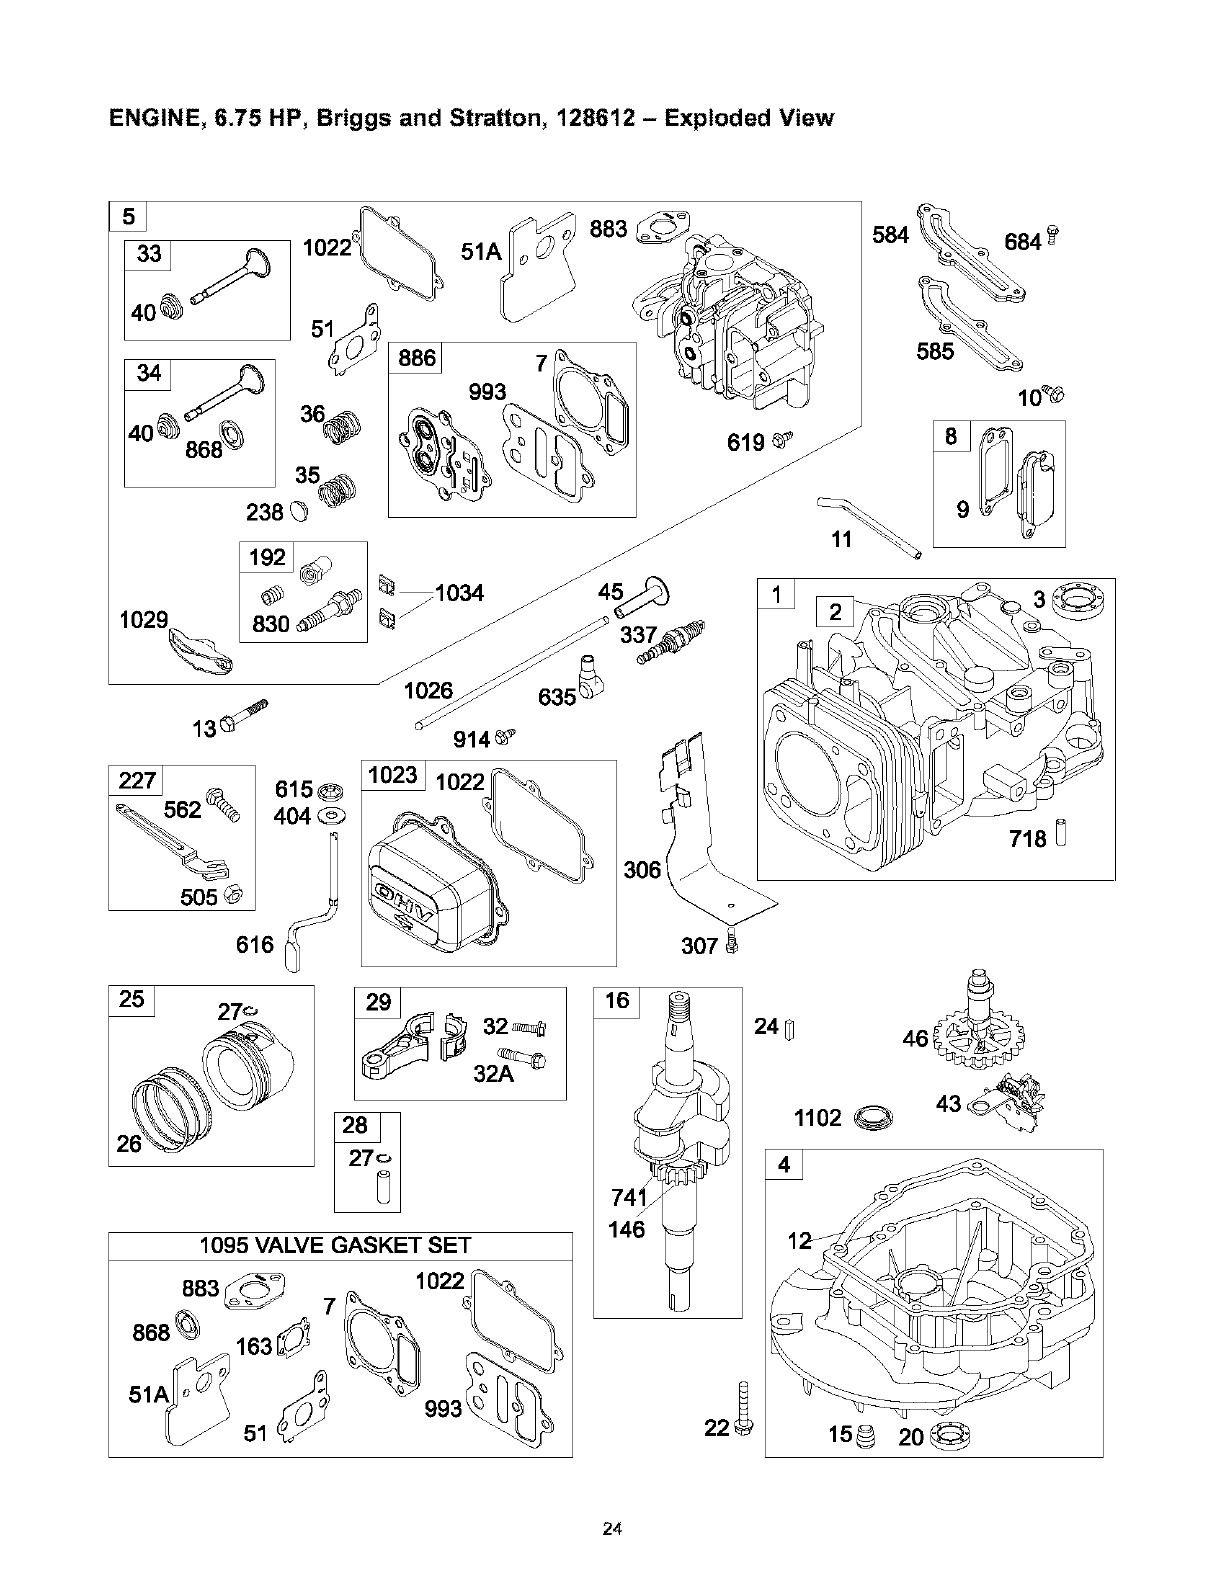 Cute exploded view of briggs and stratton engine pictures